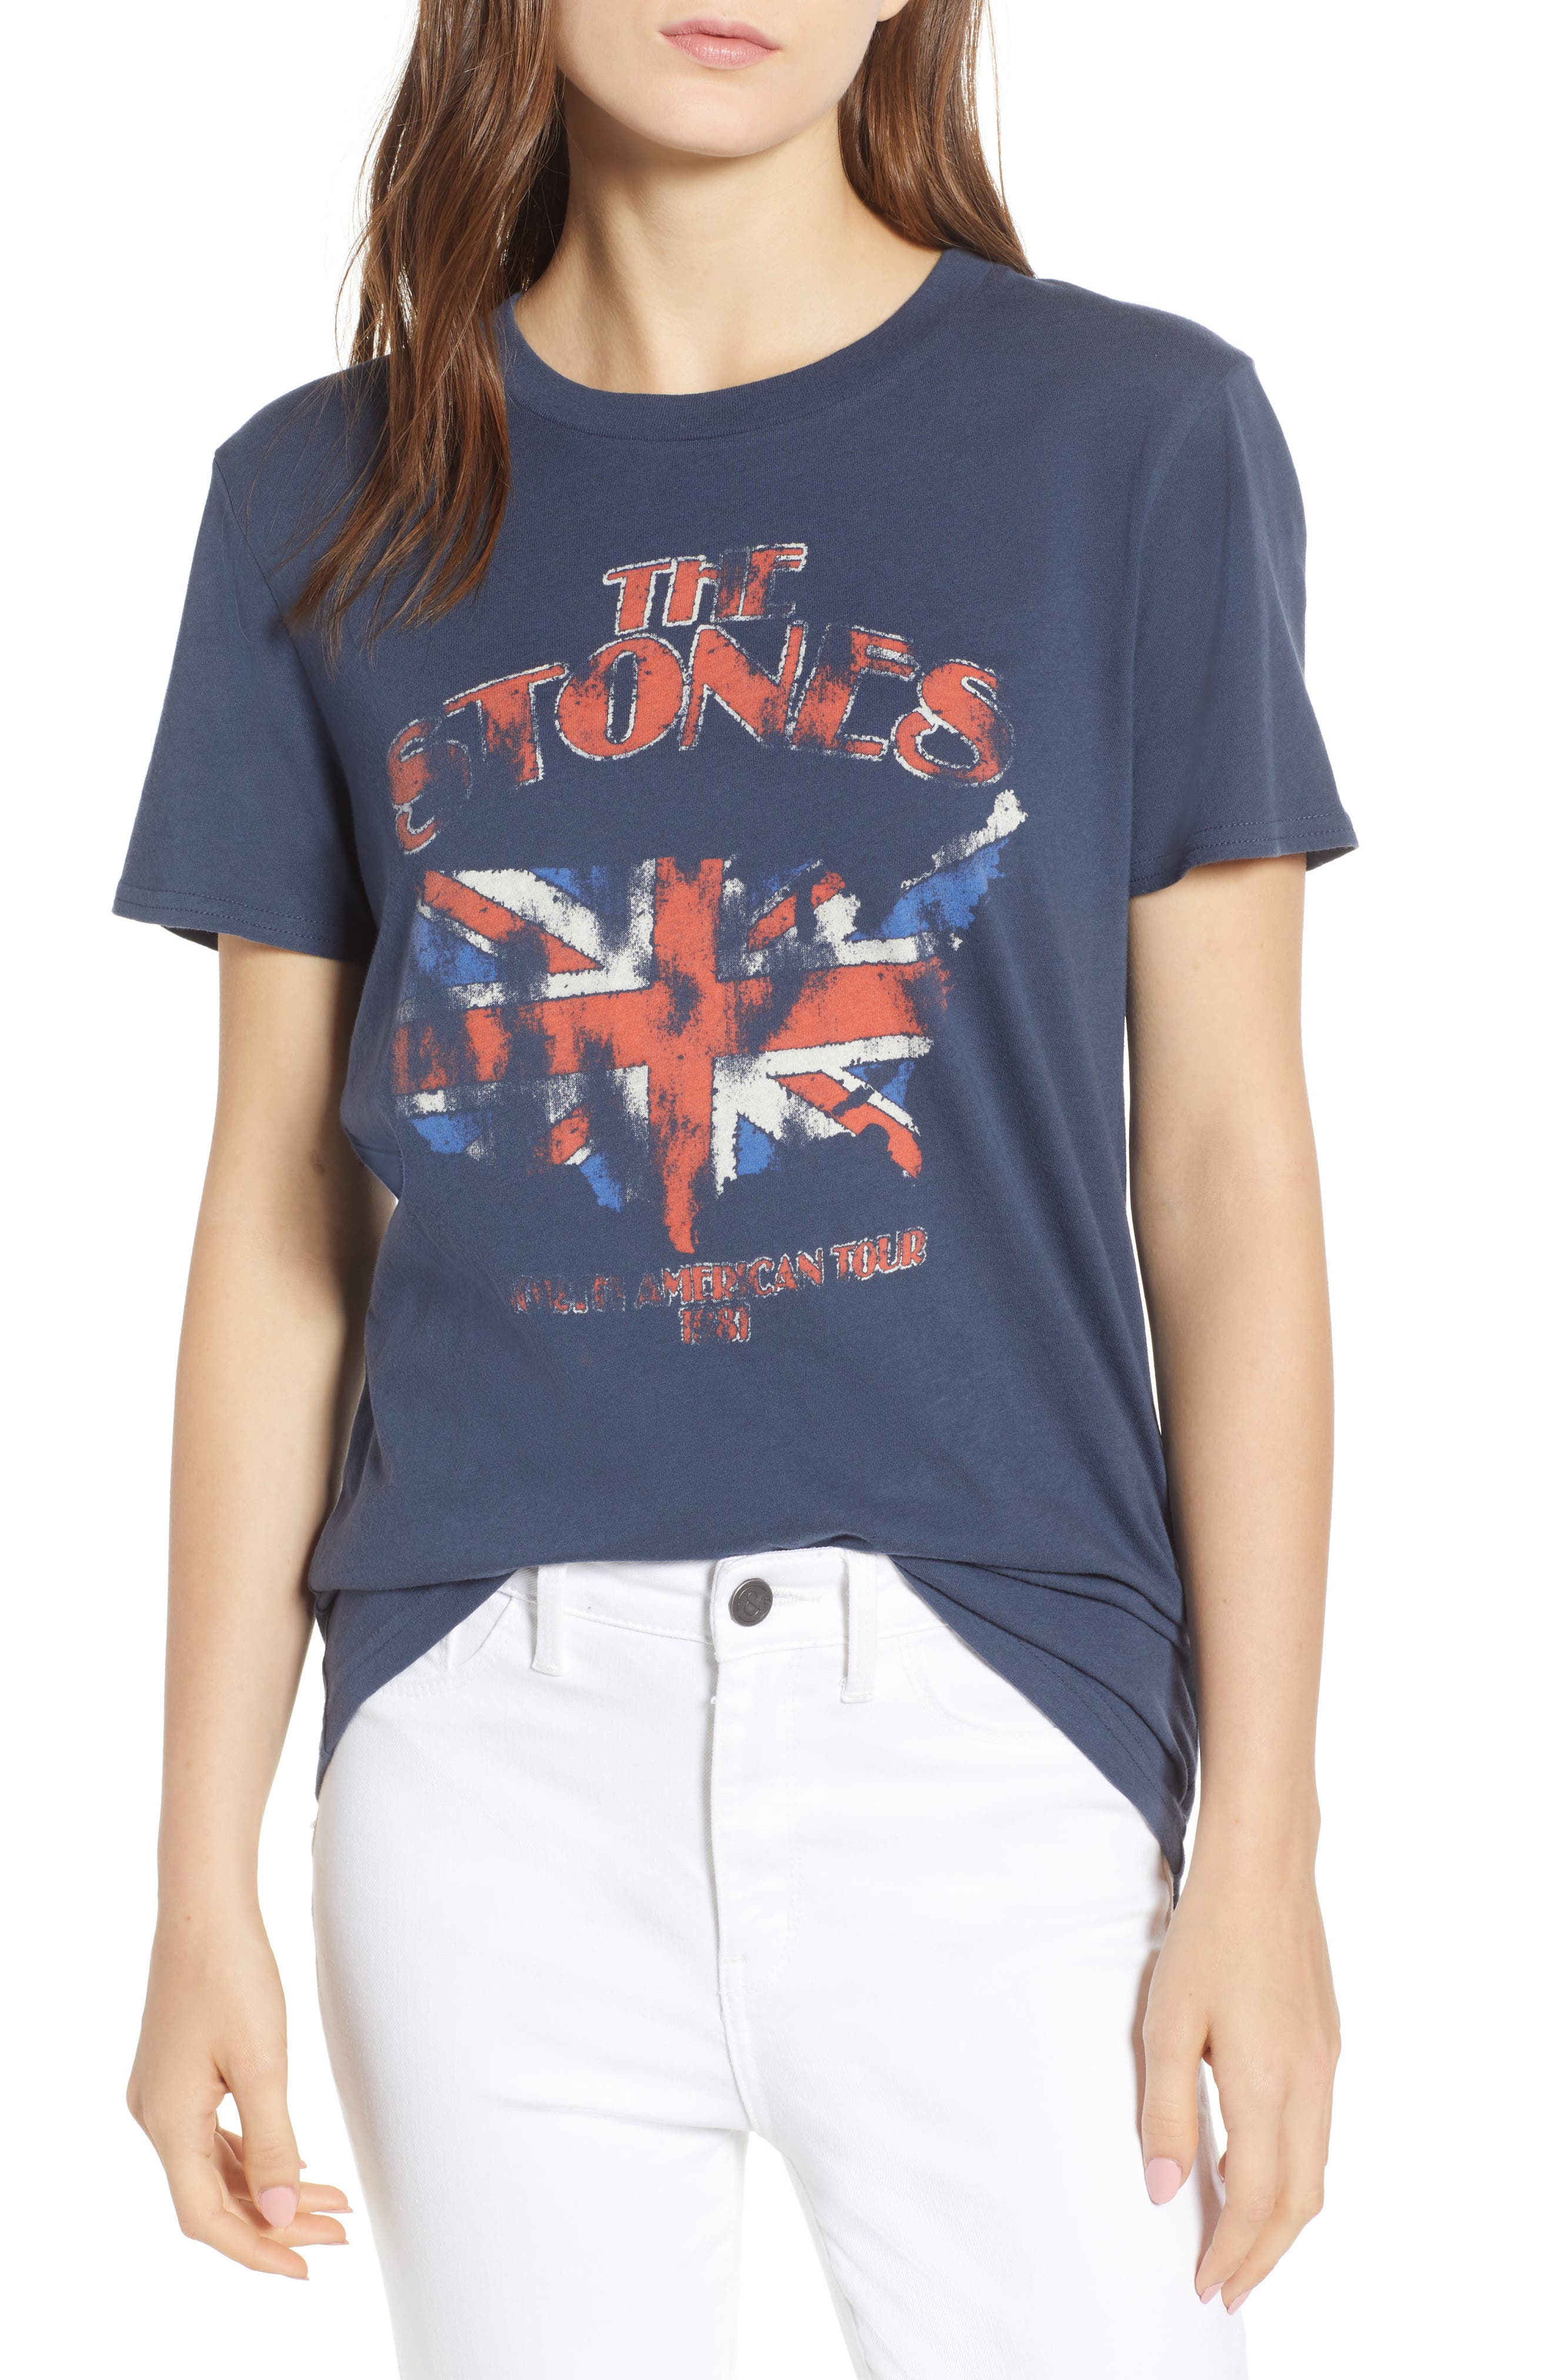 The Stones Graphic Tee,                         Main,                         color, 420